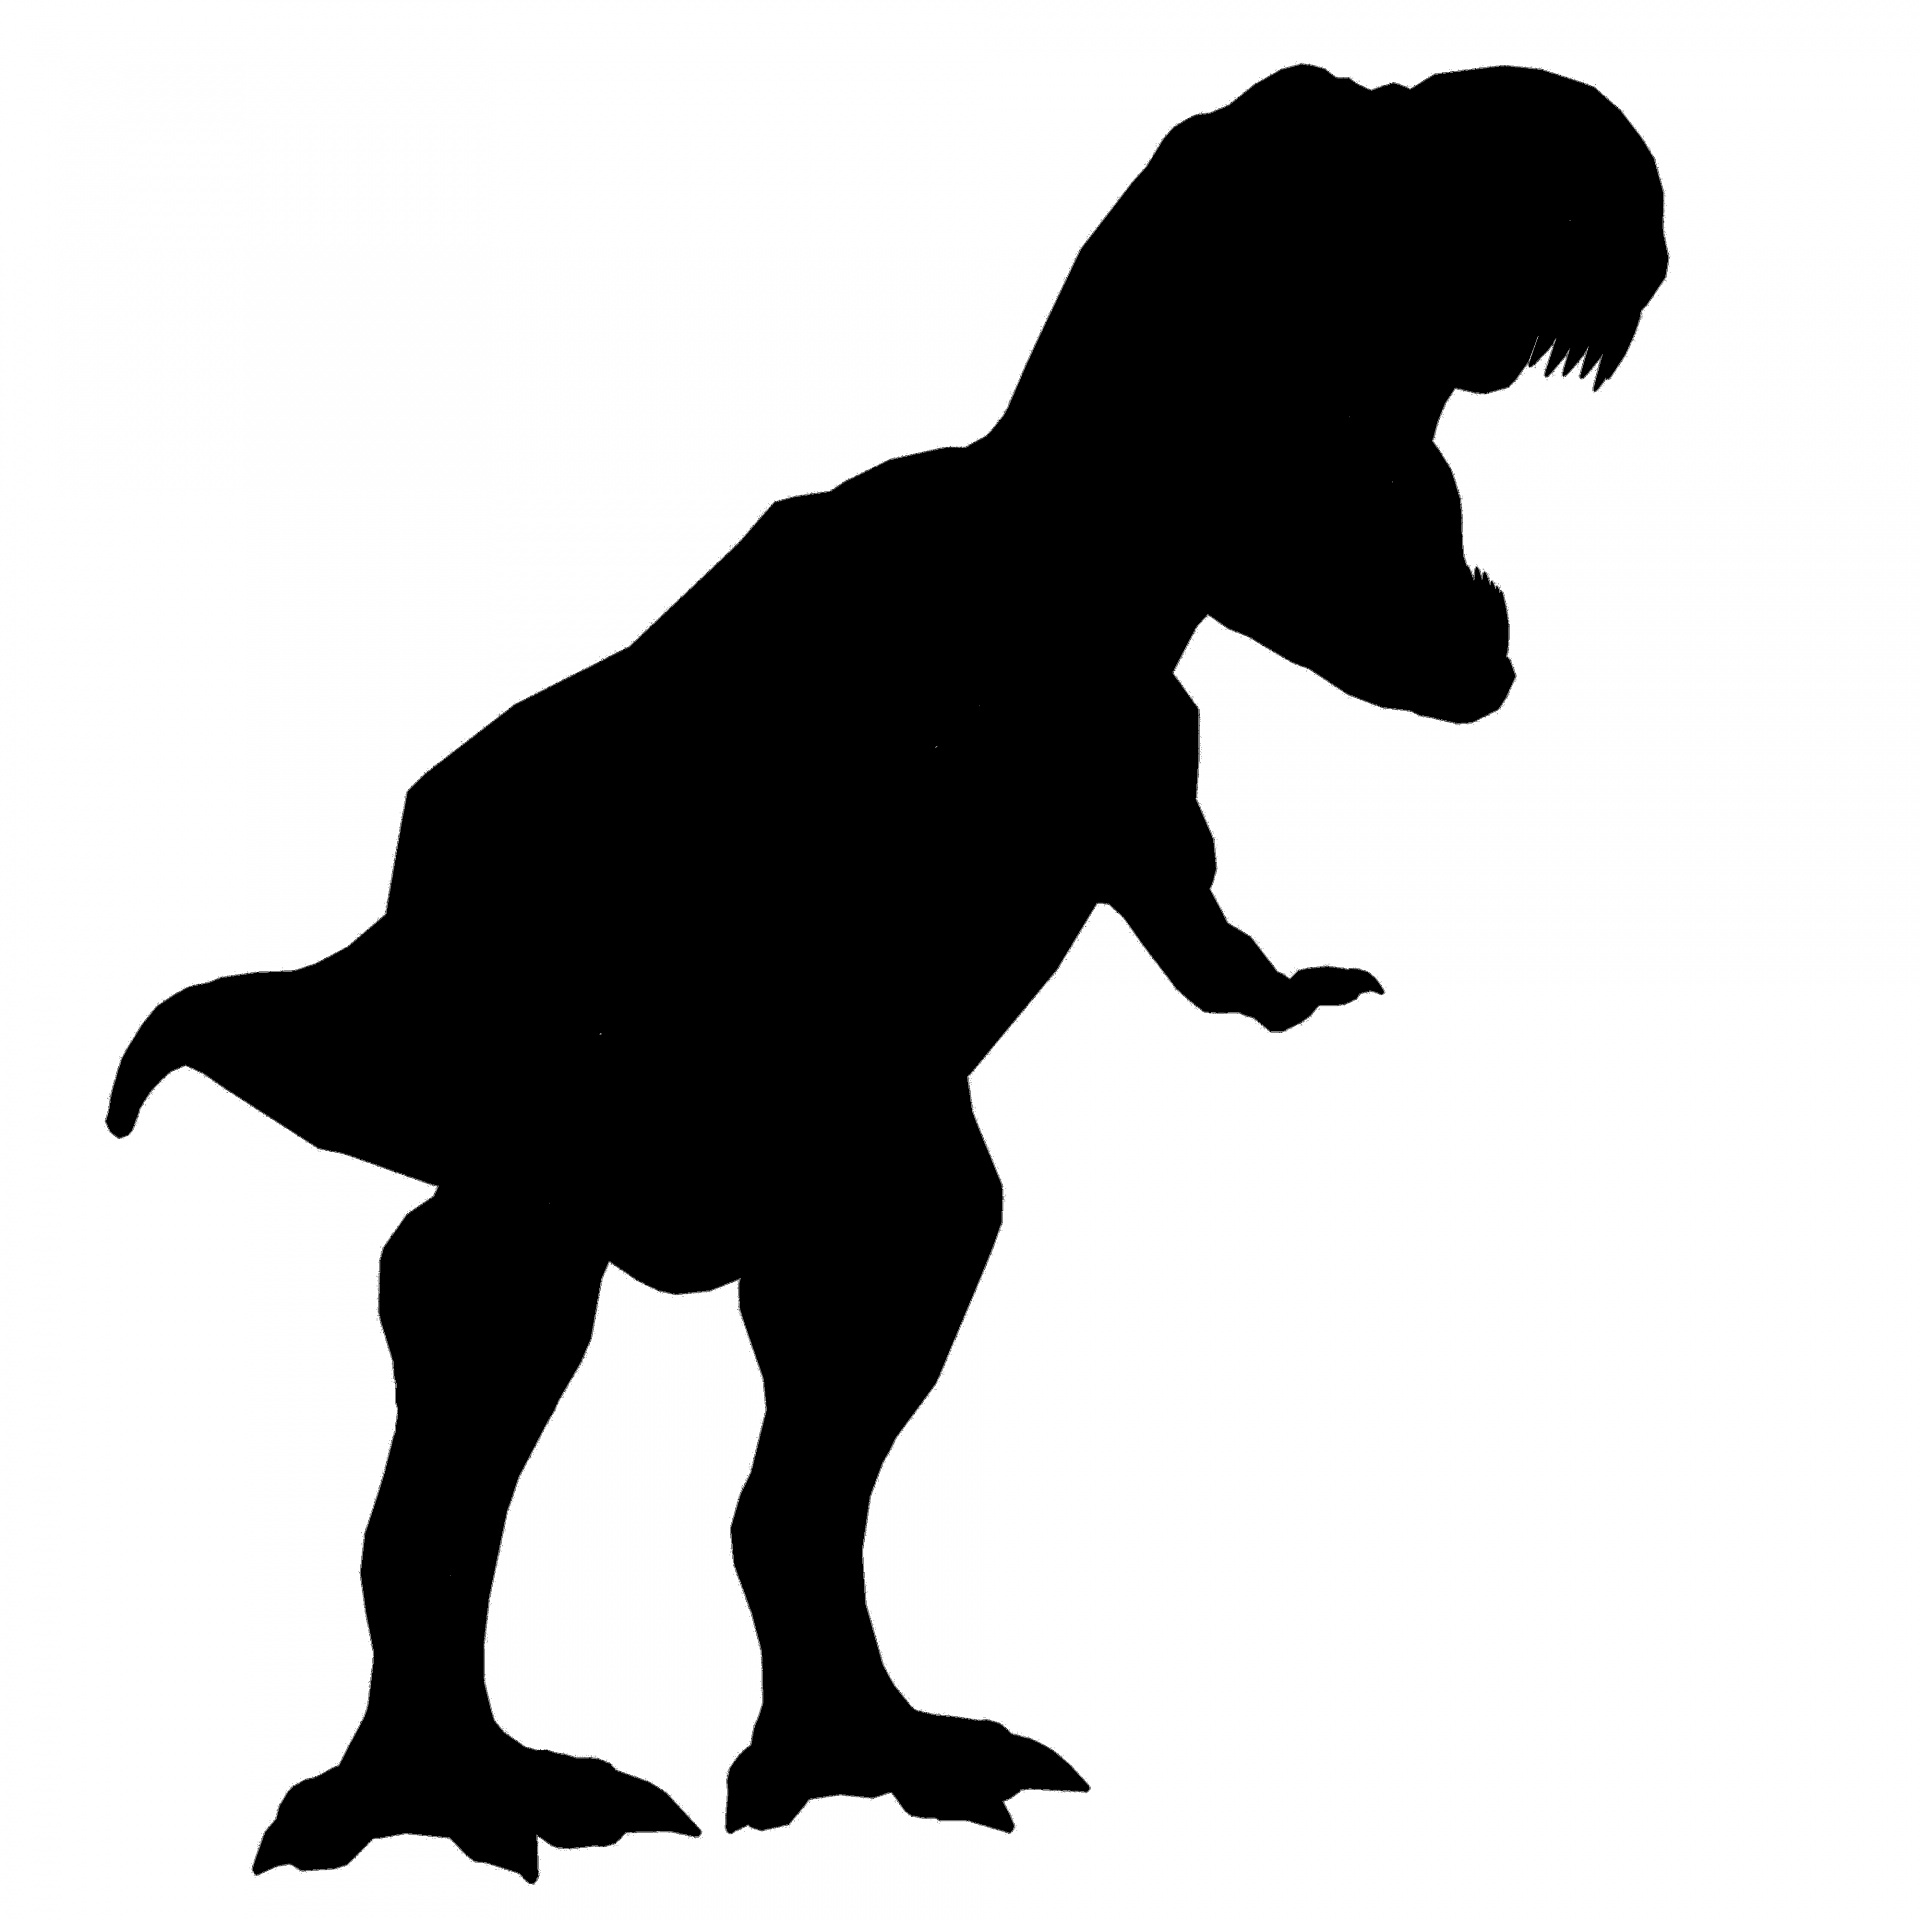 1920x1920 Silhouette Of A Trex Free Stock Photo